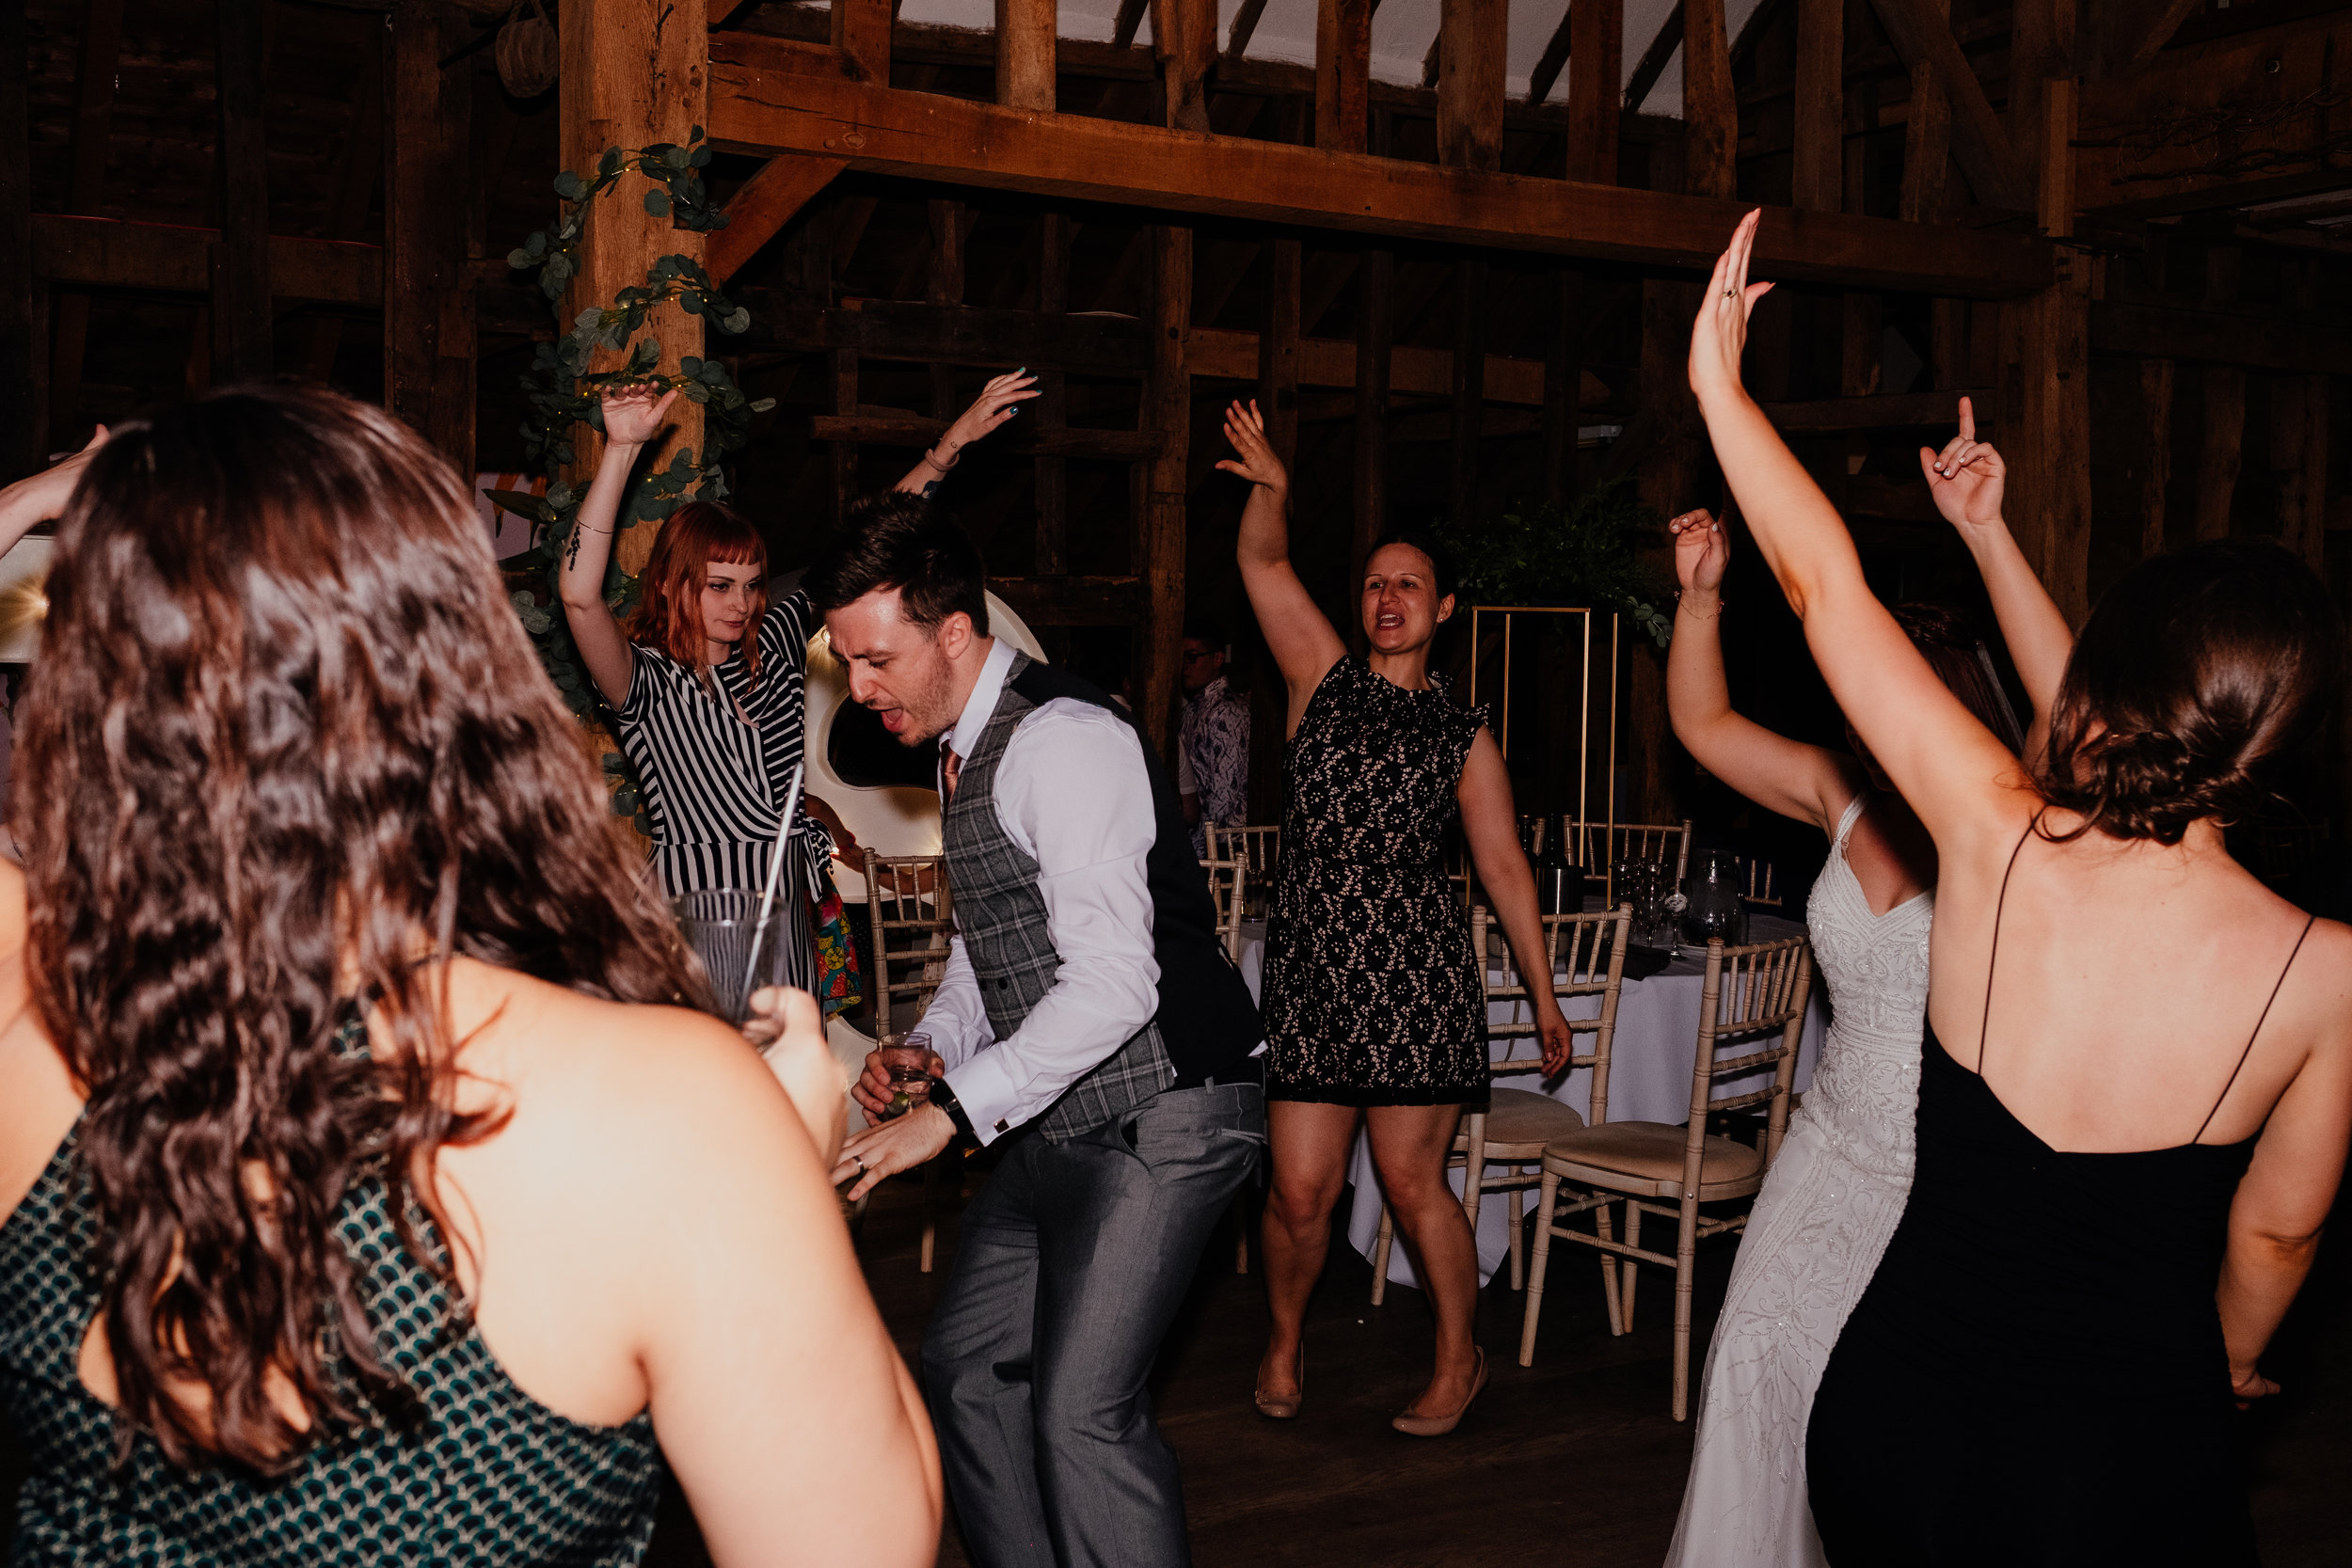 Bride and groom dancing with guests at Tewin Bury Farm wedding